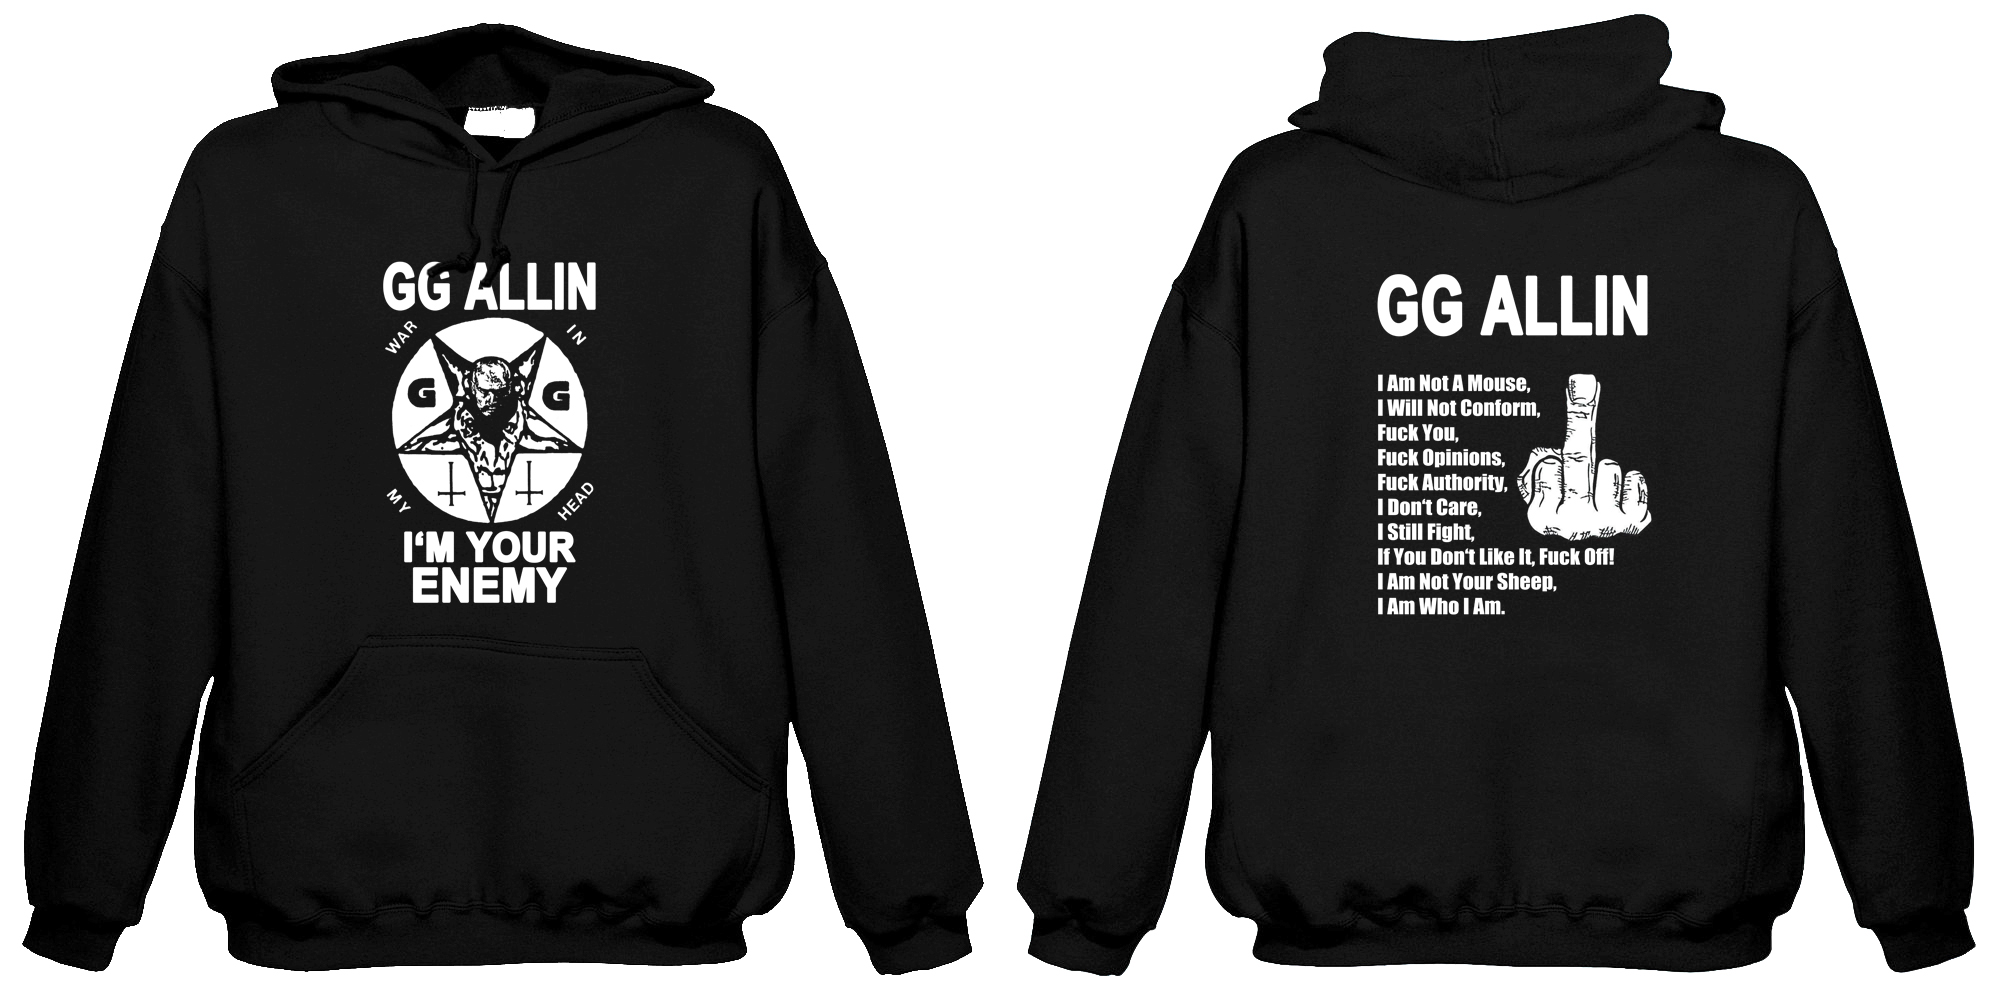 GG Allin - I'm Your Enemy  (Hooded Sweatshirt)